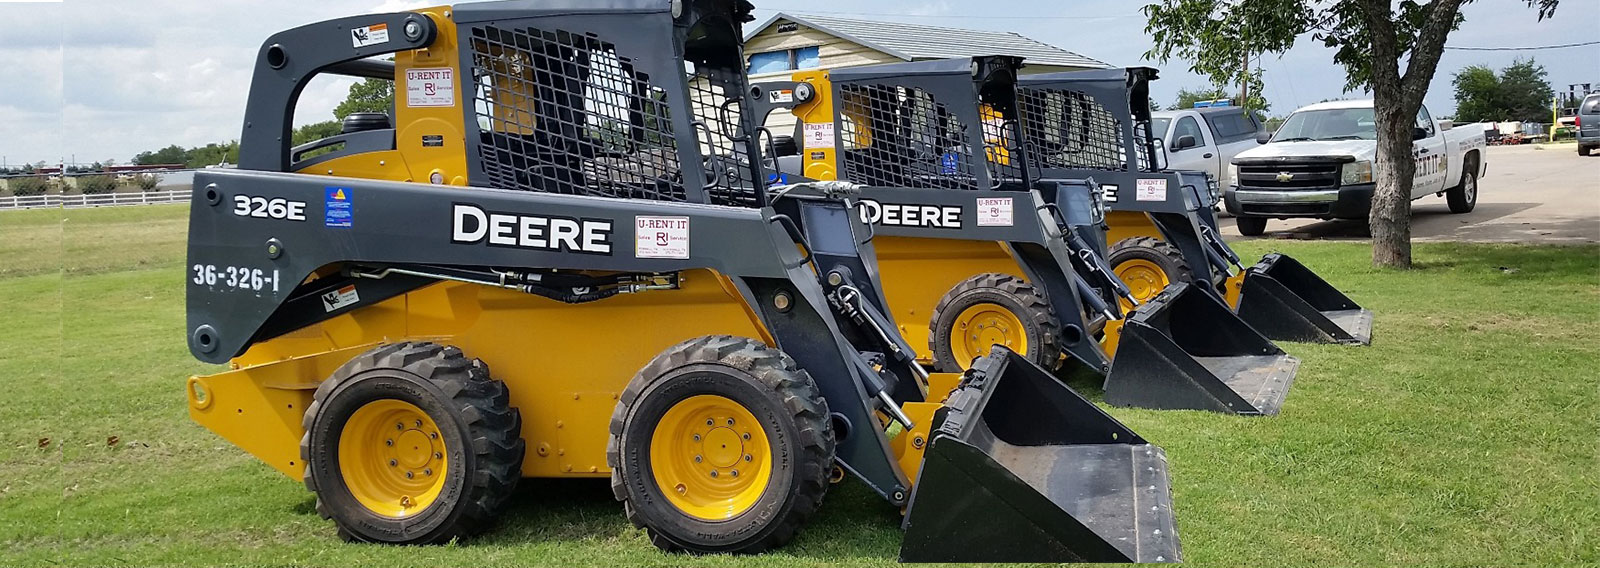 Earthmoving rentals in Terrell, Rockwall, Gun Barrel City and Mabank Texas